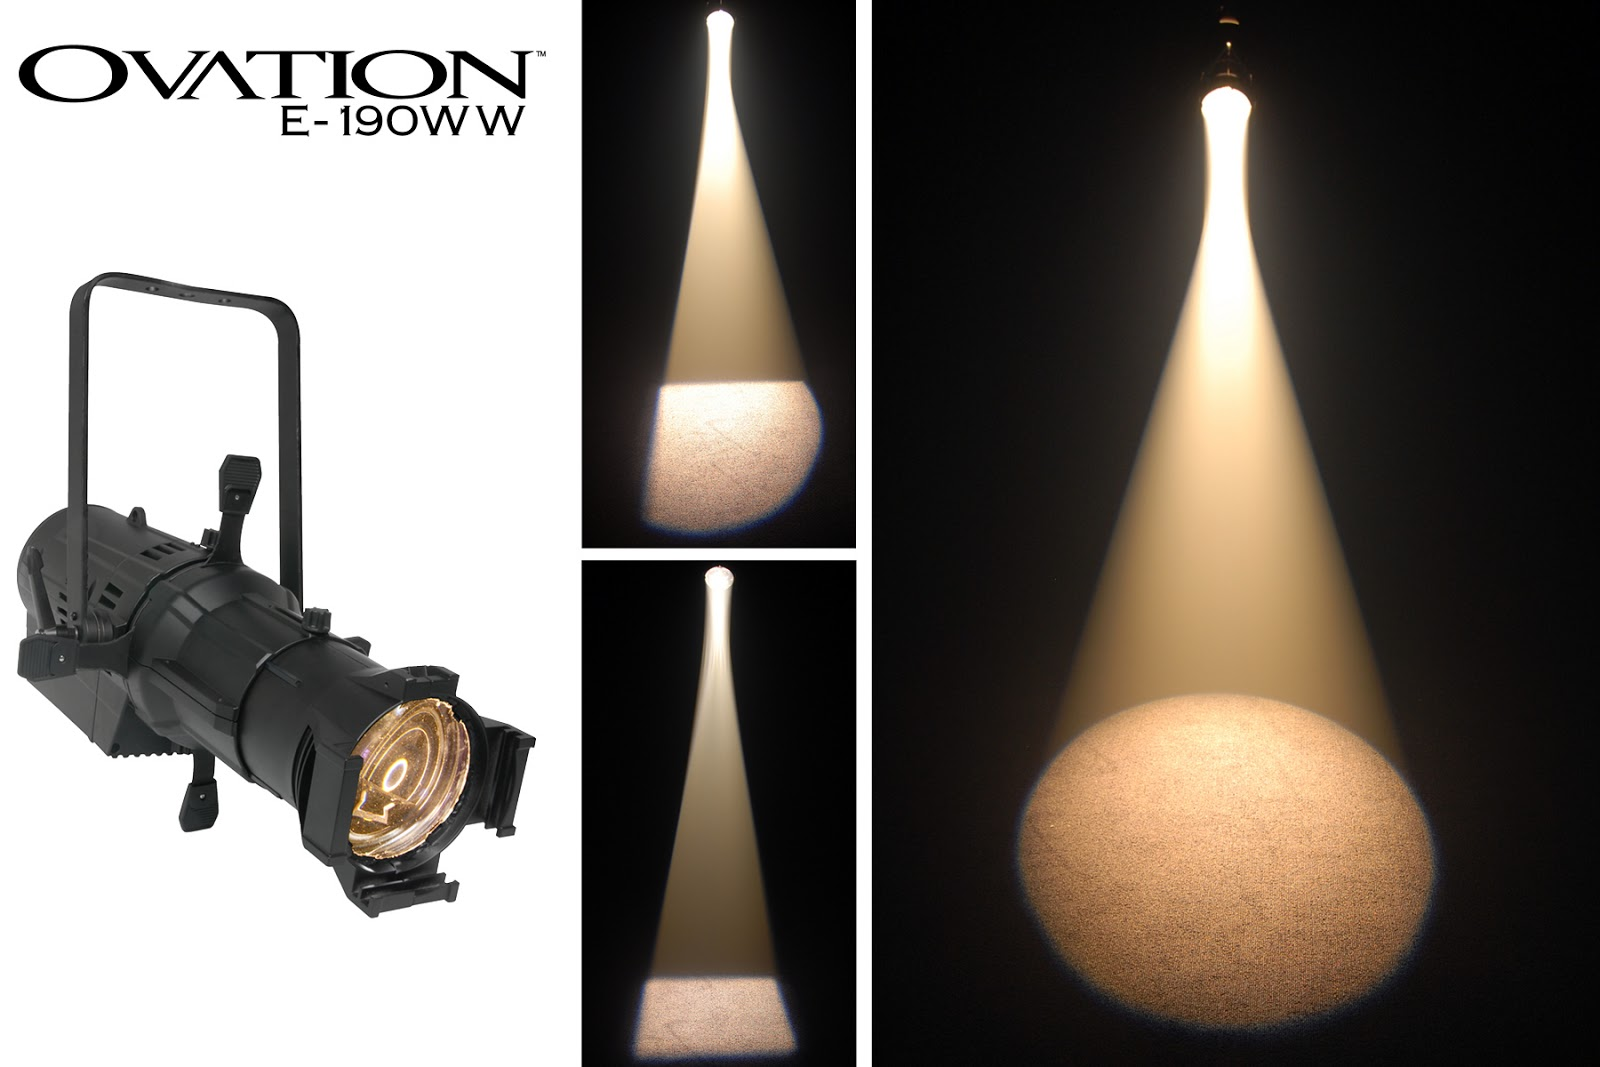 CHAUVETR Professional OvationTM F 165WW And E 190WW Luminaires Are Designed Specifically For Theater Stage Powered By 16 10 Watt LEDs